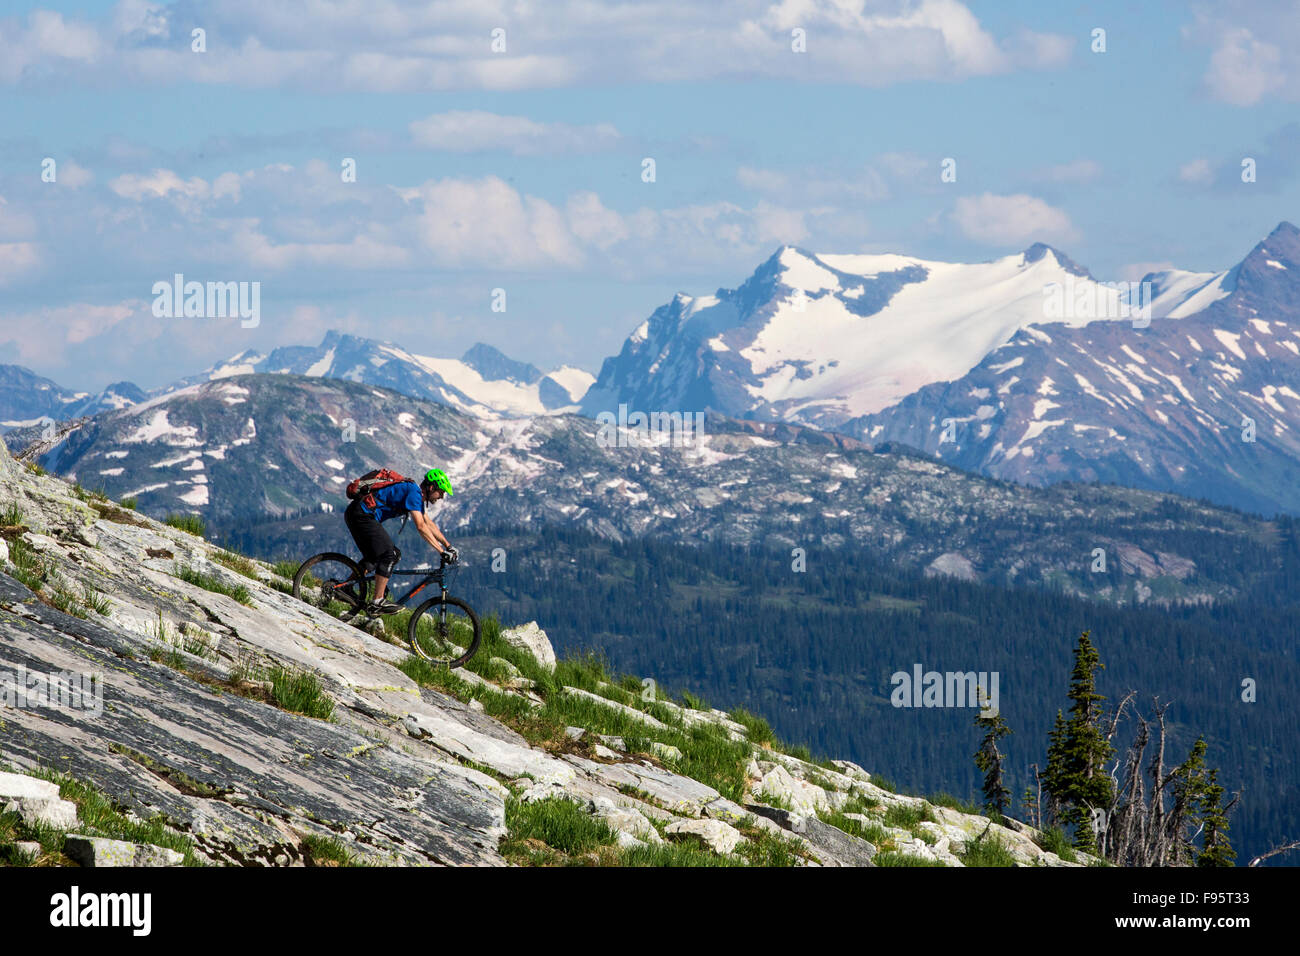 Mountainbiking, Adlerpass, Mount Englisch, Monashee Mountains, Revelstoke, Britisch-Kolumbien, Kanada, alpine Mountain Stockbild